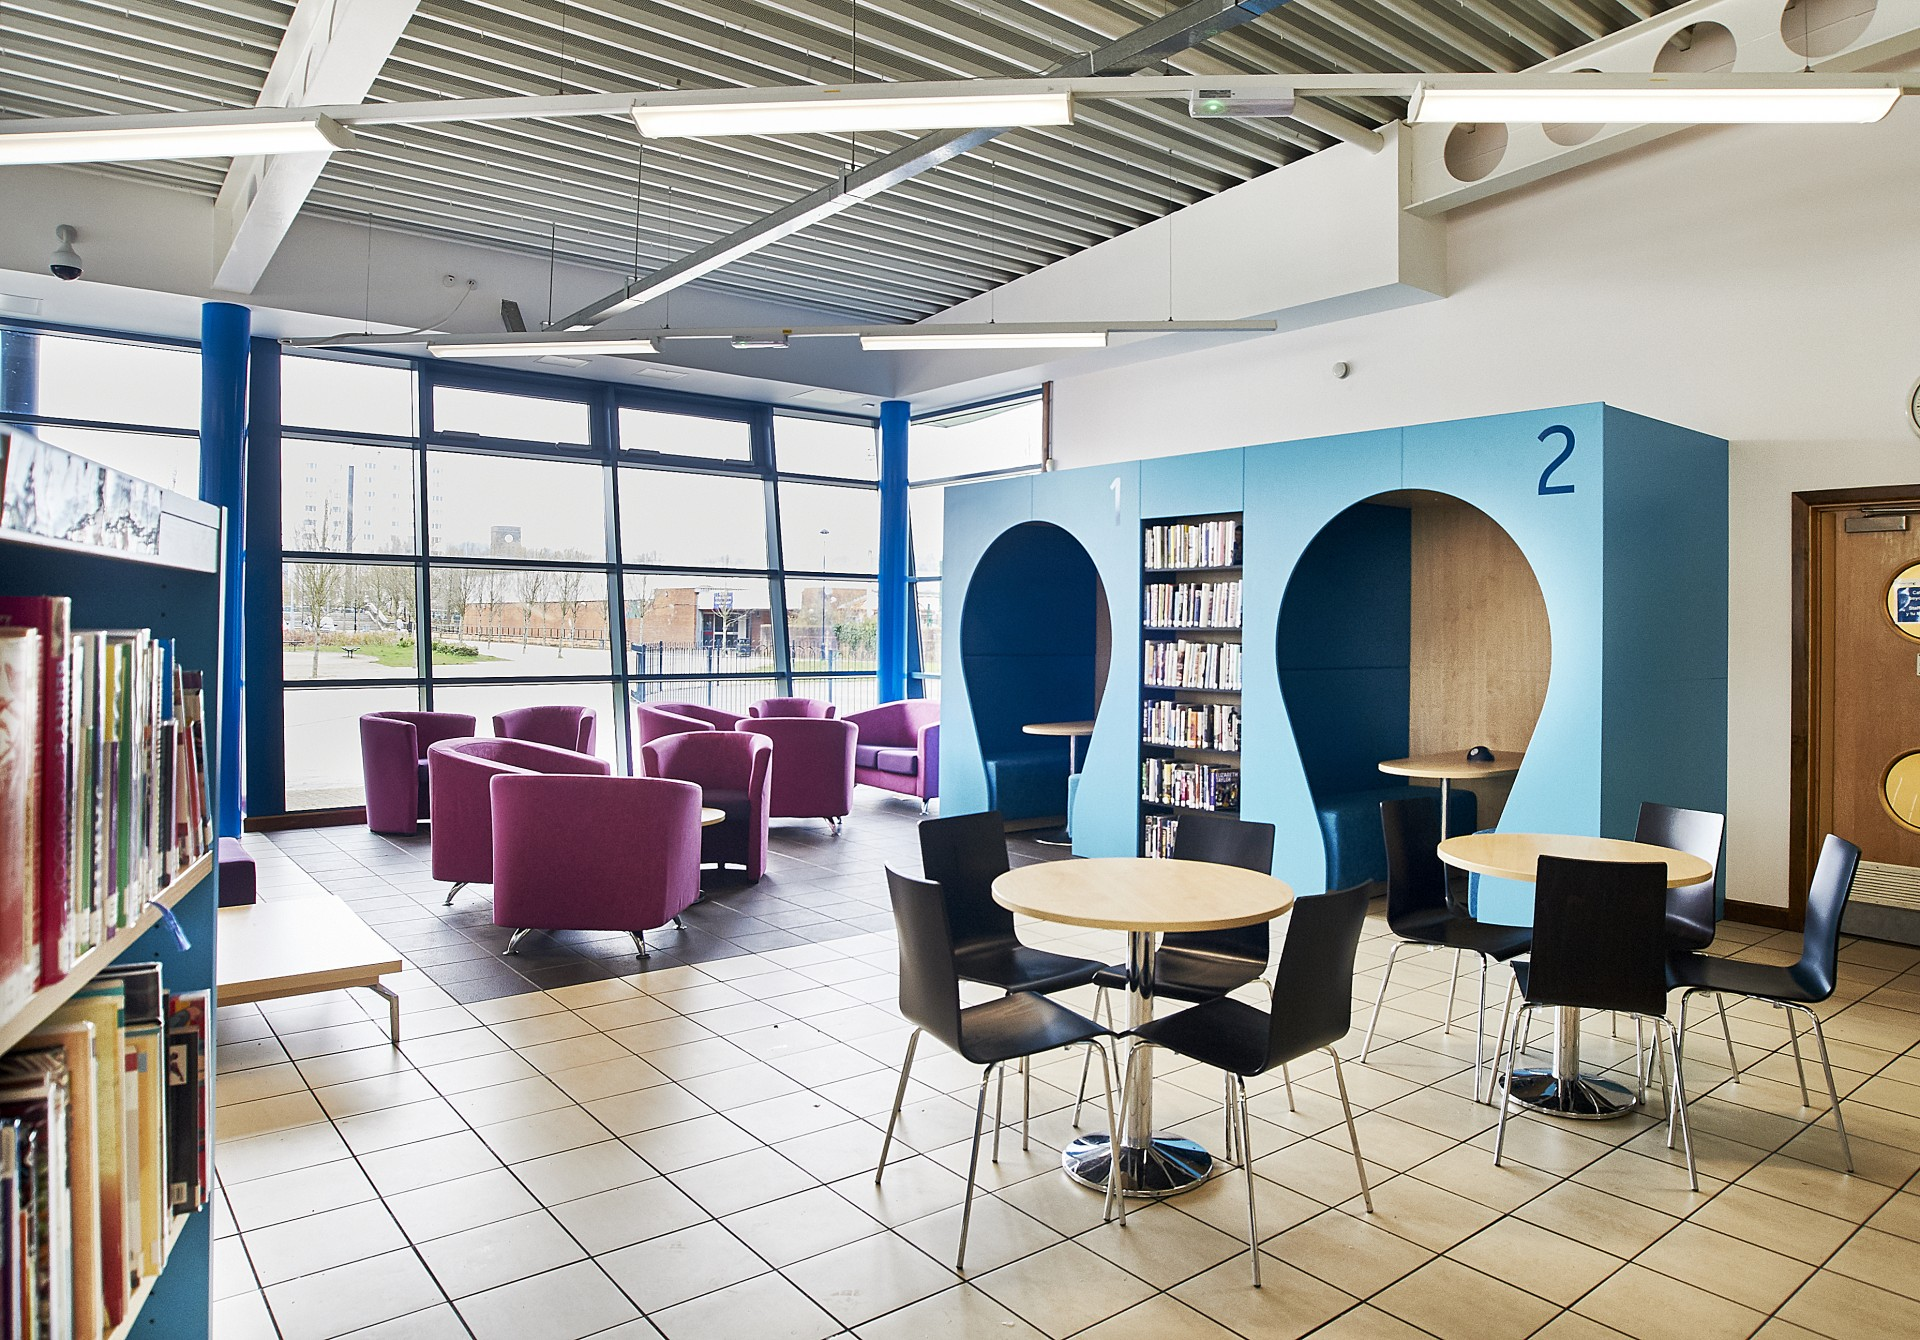 an image for Merthyr Tydfil Leisure Centre